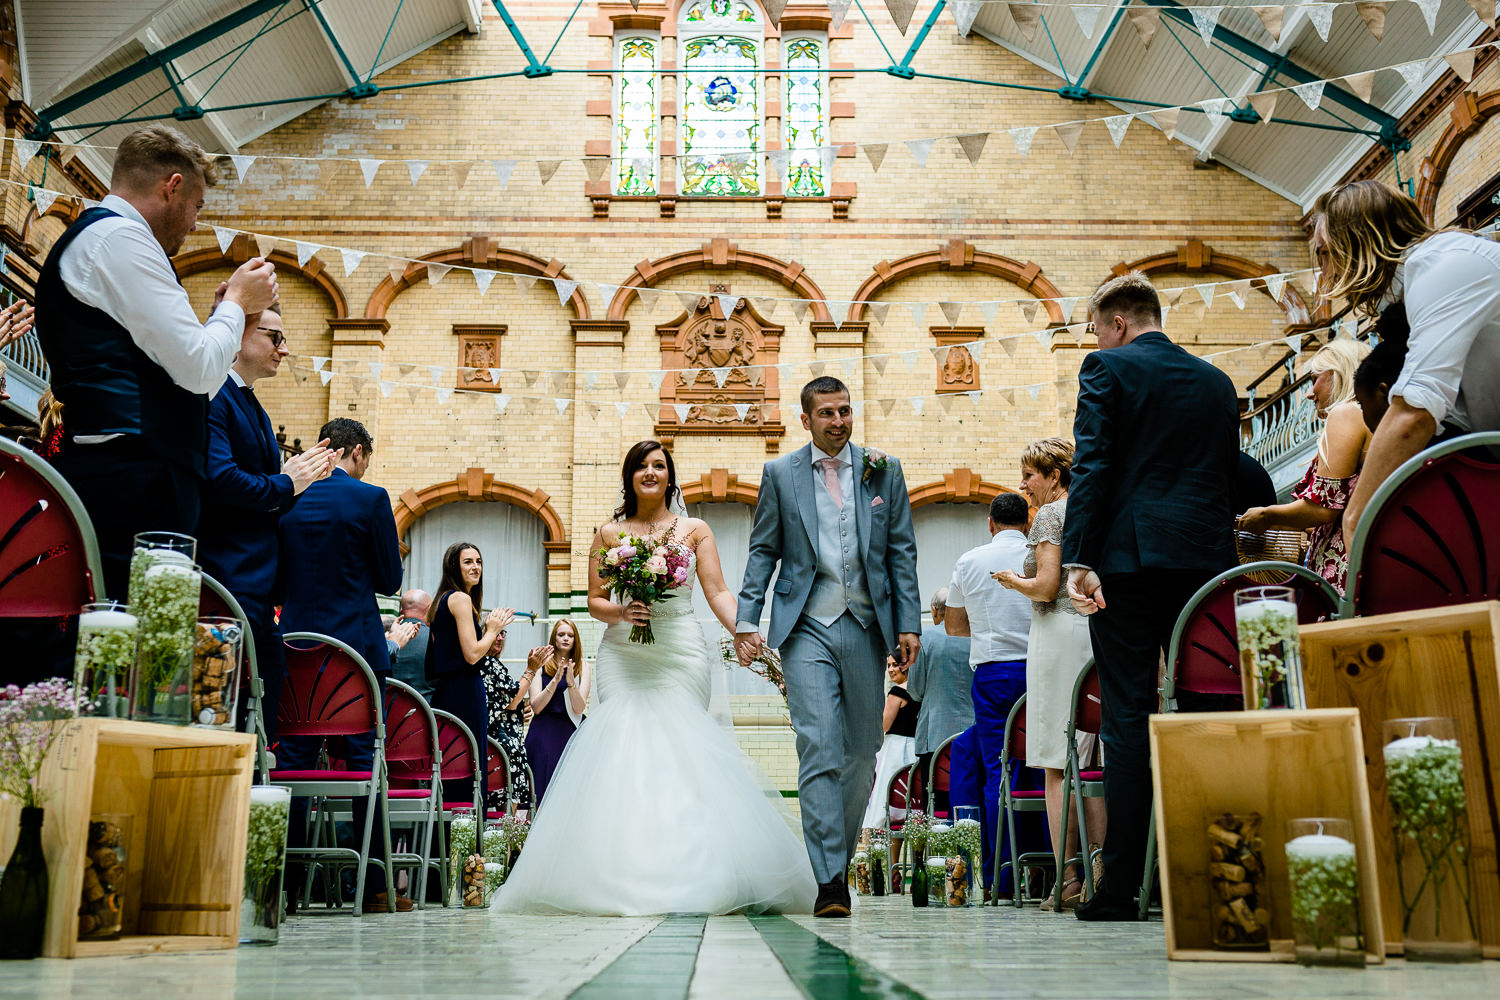 Victoria Baths wedding photographer, Kirsty & Kirk walk up the aisle as Mr & Mrs.